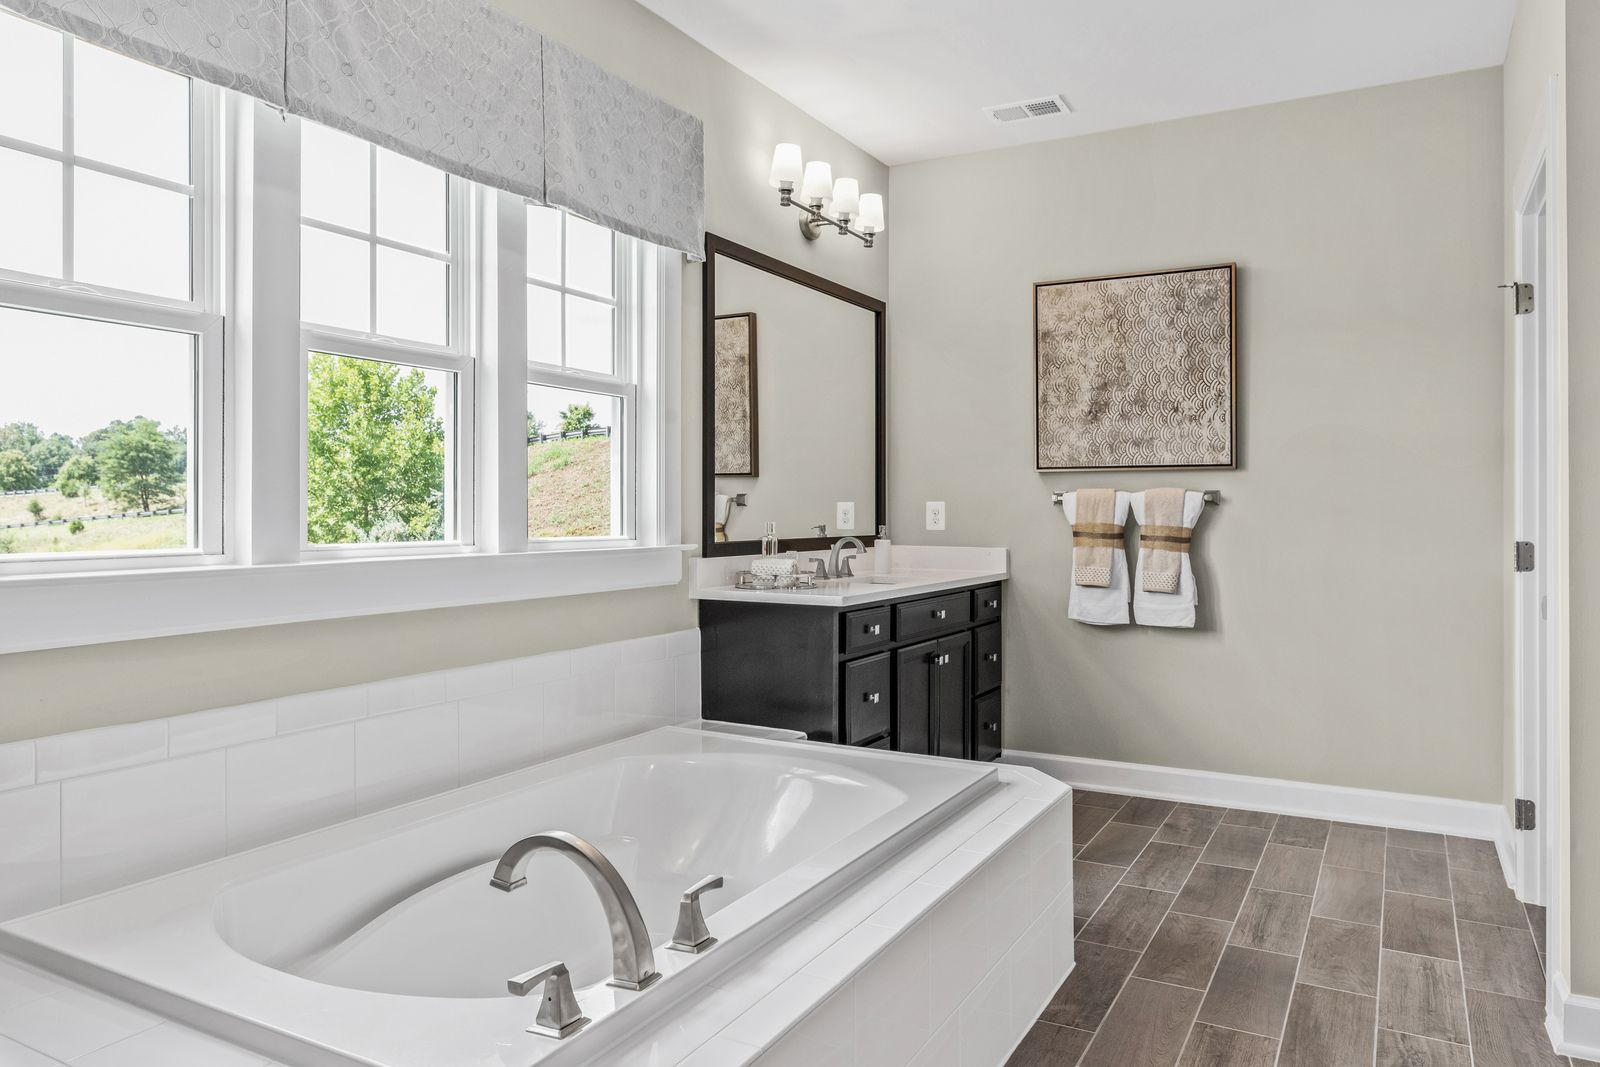 Bathroom featured in the Marymount By NVHomes in Washington, MD